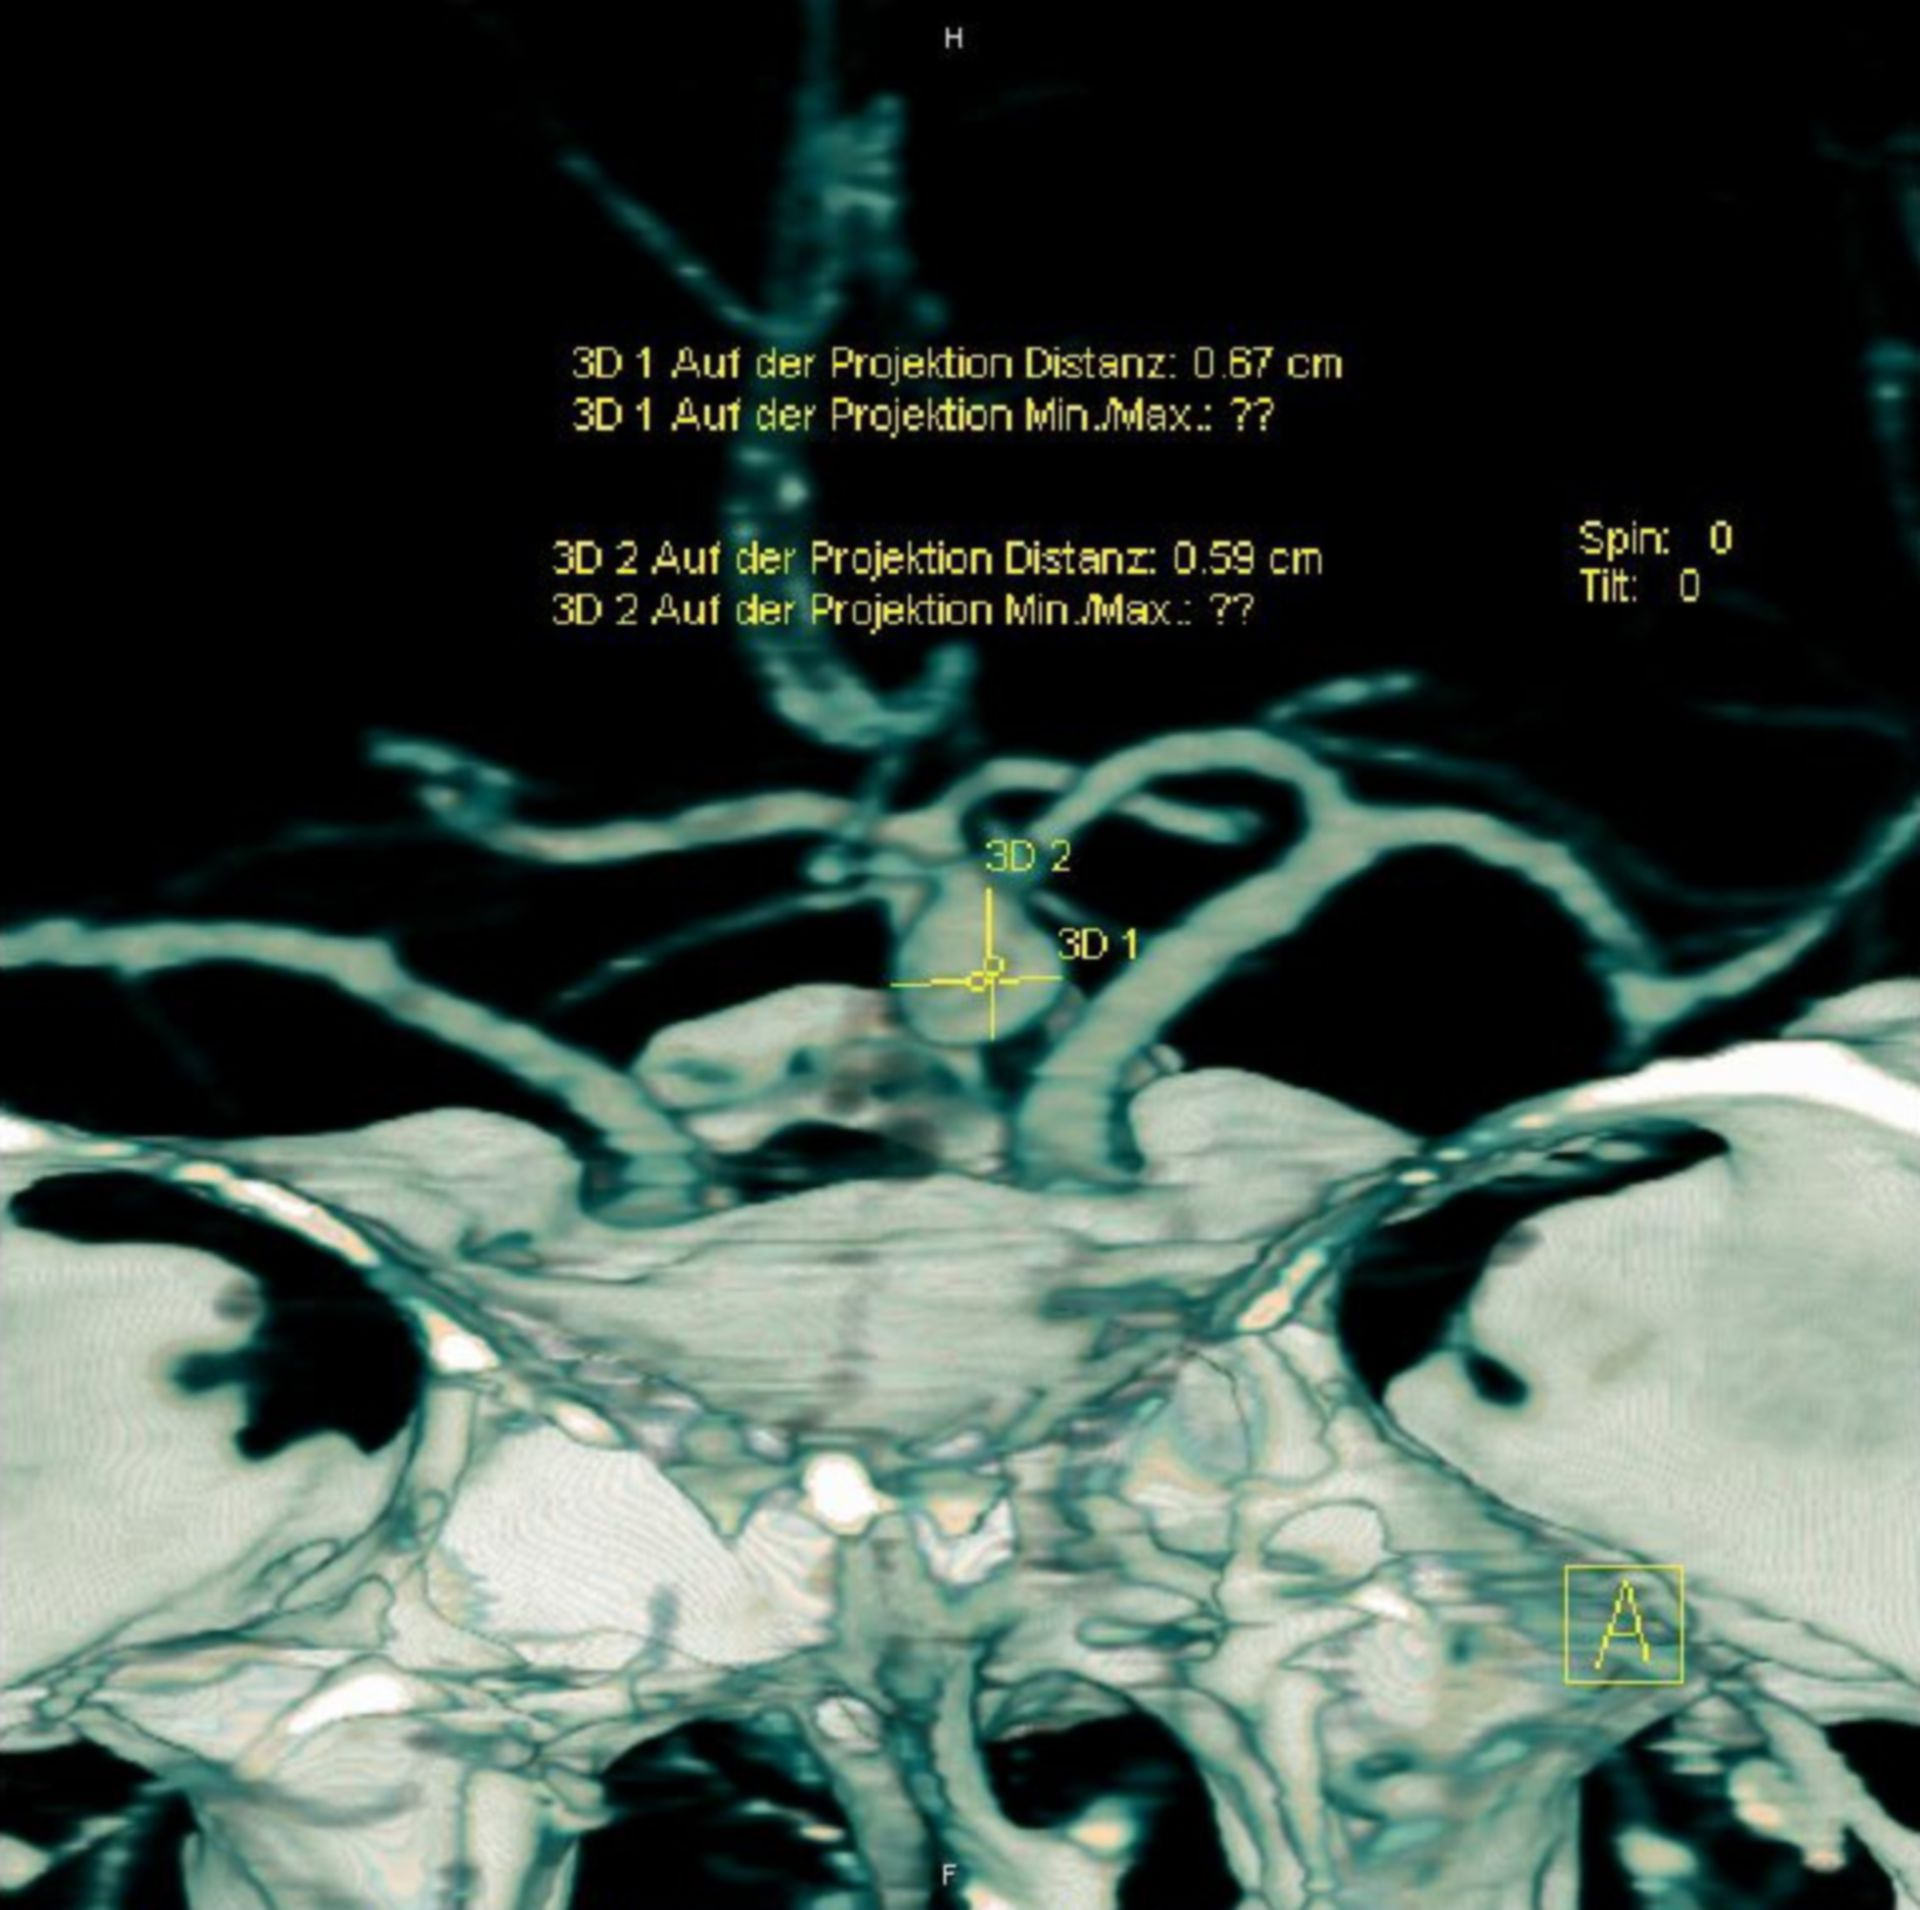 Aneurysma - CT-Angiographie, Messung